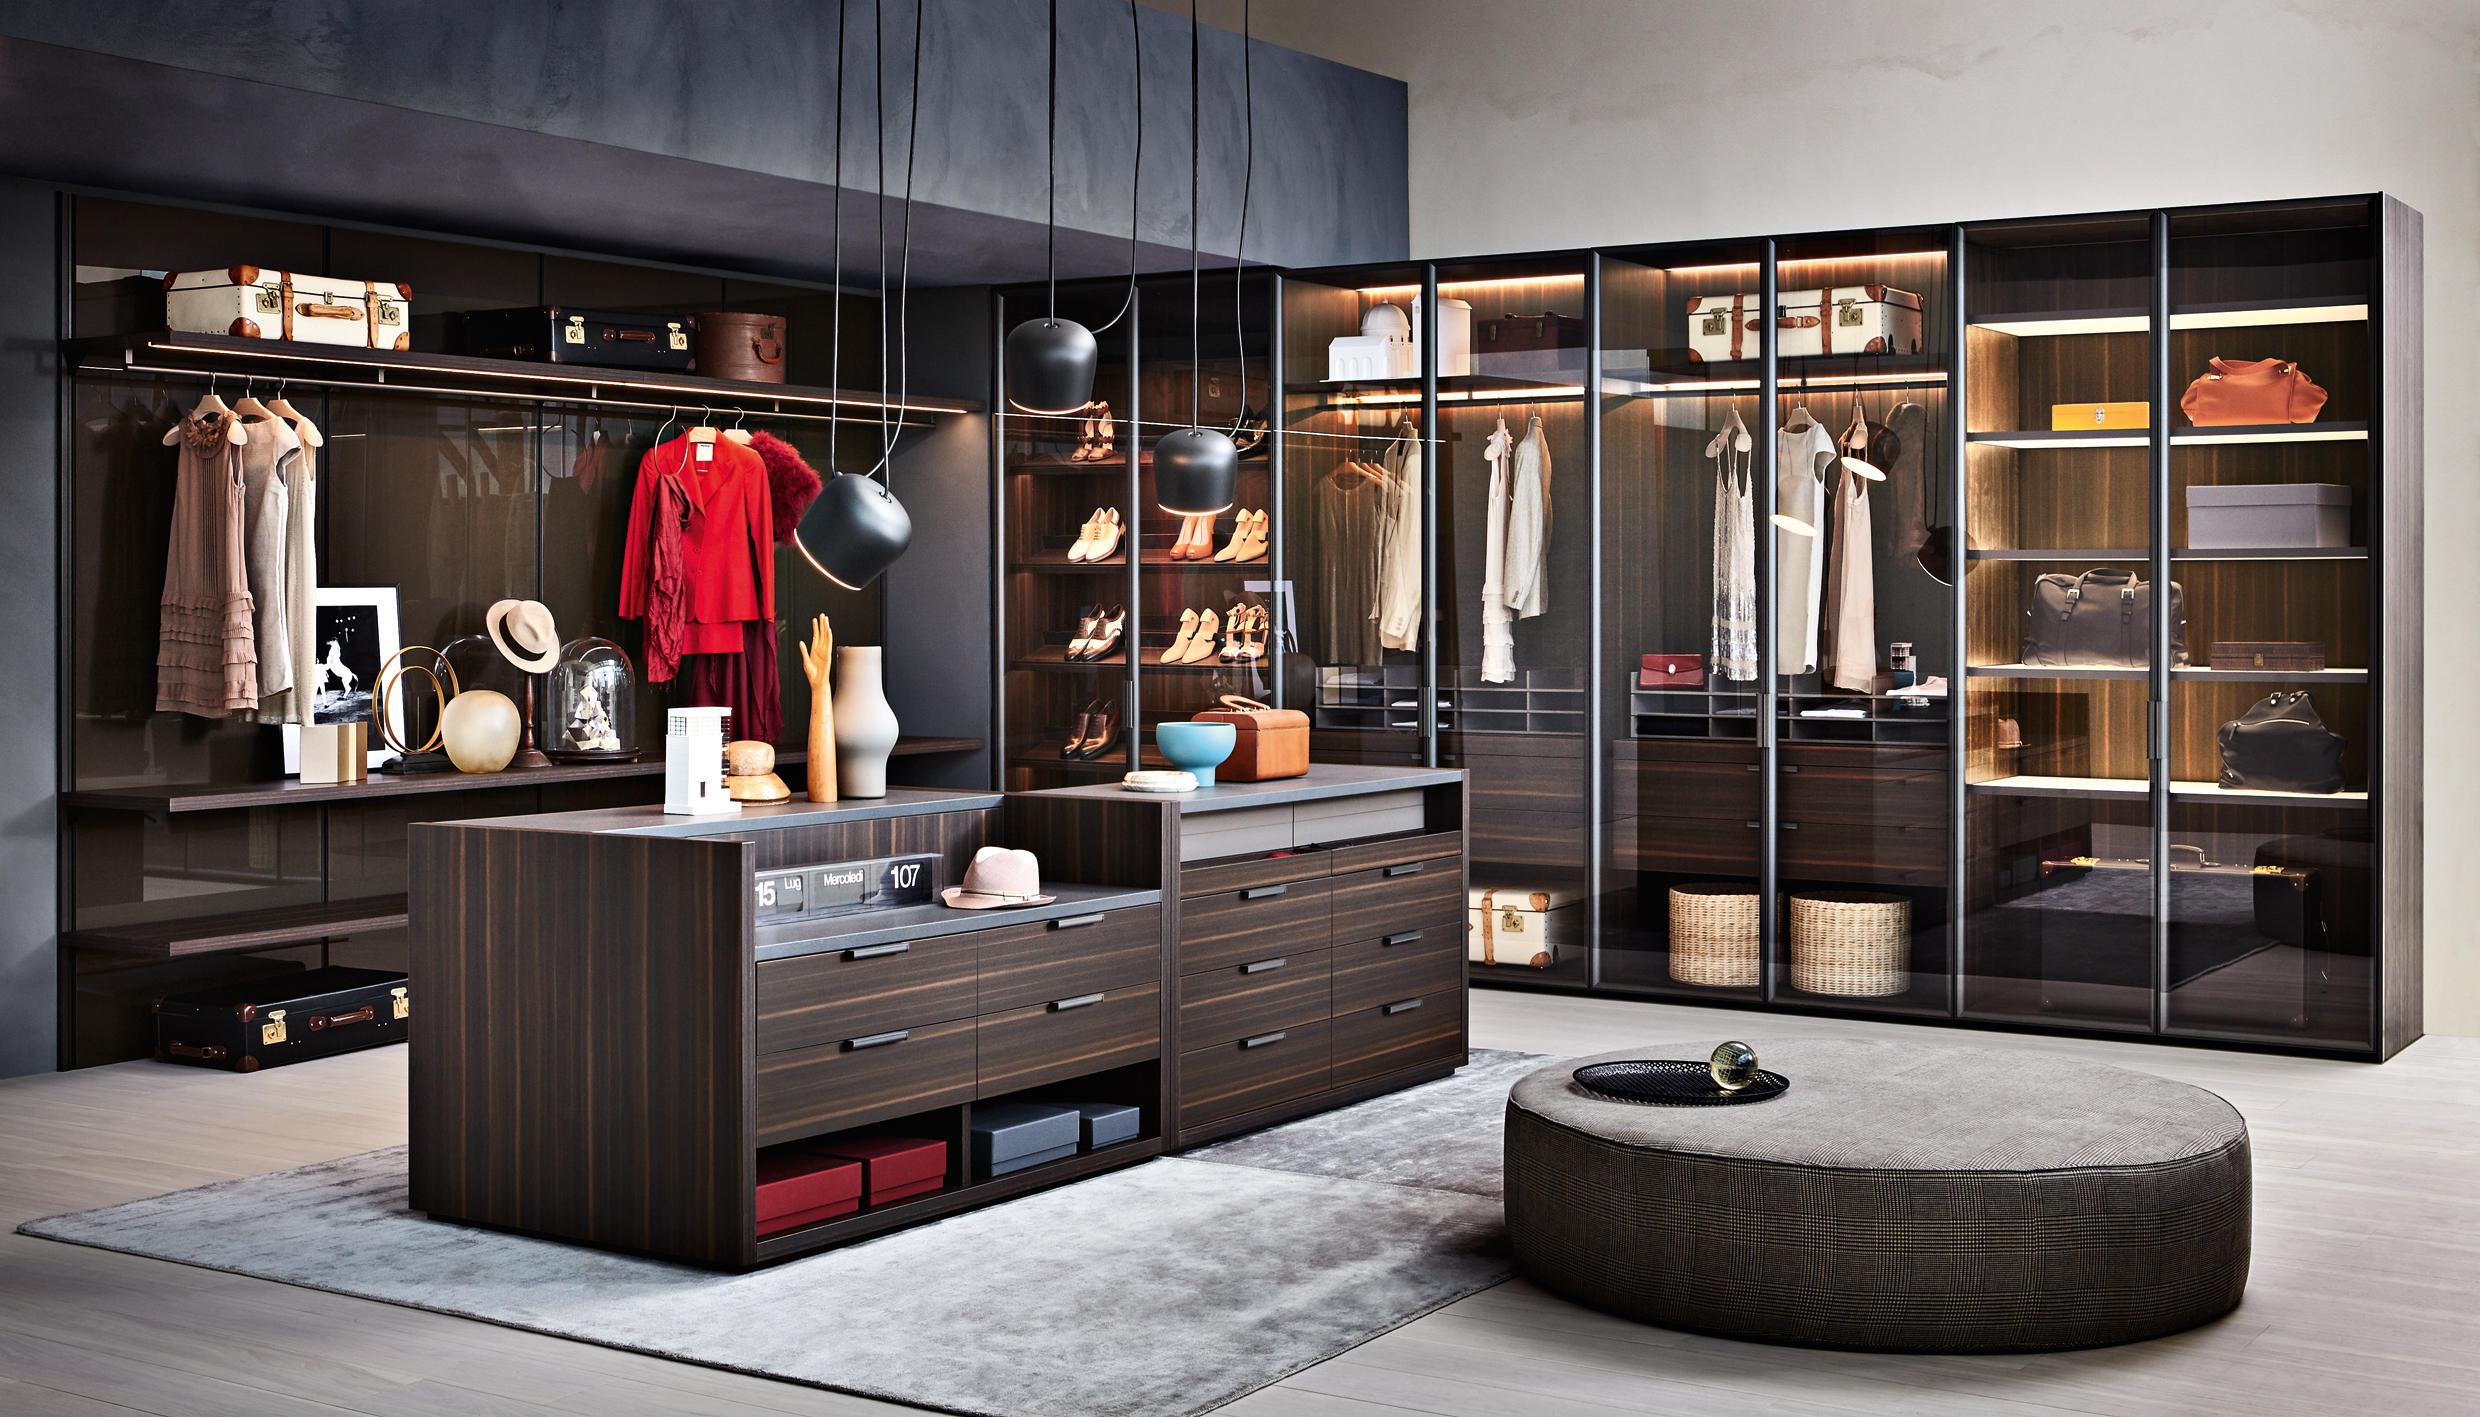 design custom factory home closet organization excellent closets solutions boston ideas and amazing california